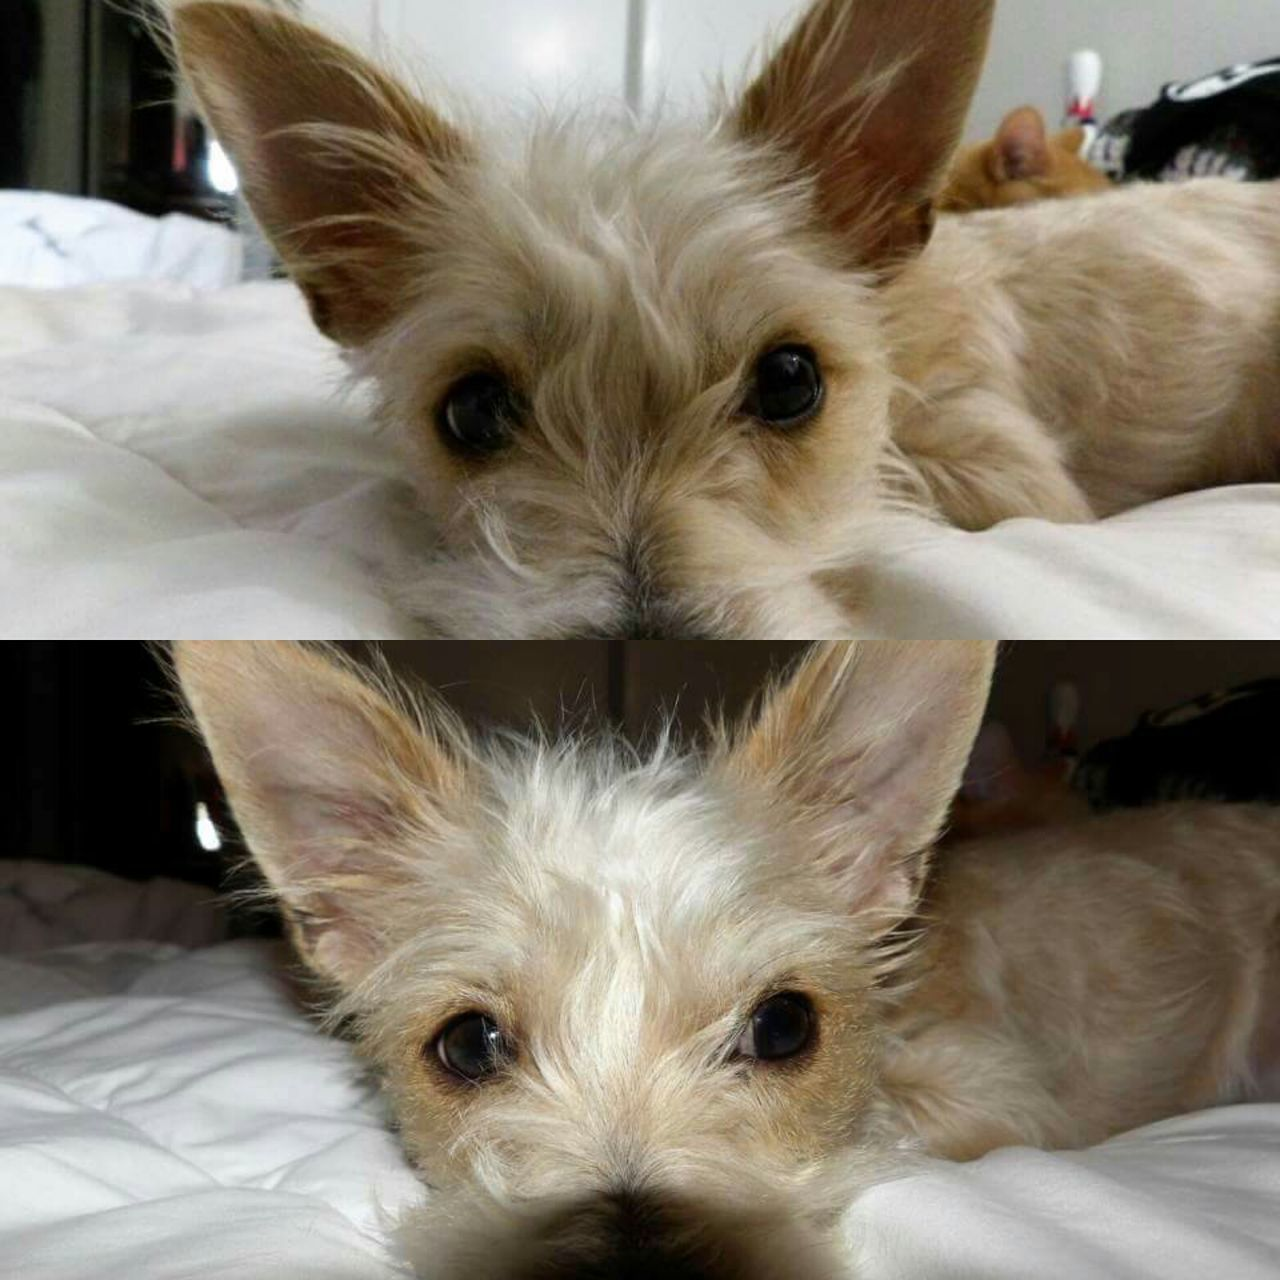 pets, looking at camera, dog, domestic animals, mammal, one animal, animal themes, portrait, bed, indoors, home interior, relaxation, cute, close-up, no people, west highland white terrier, bedroom, day